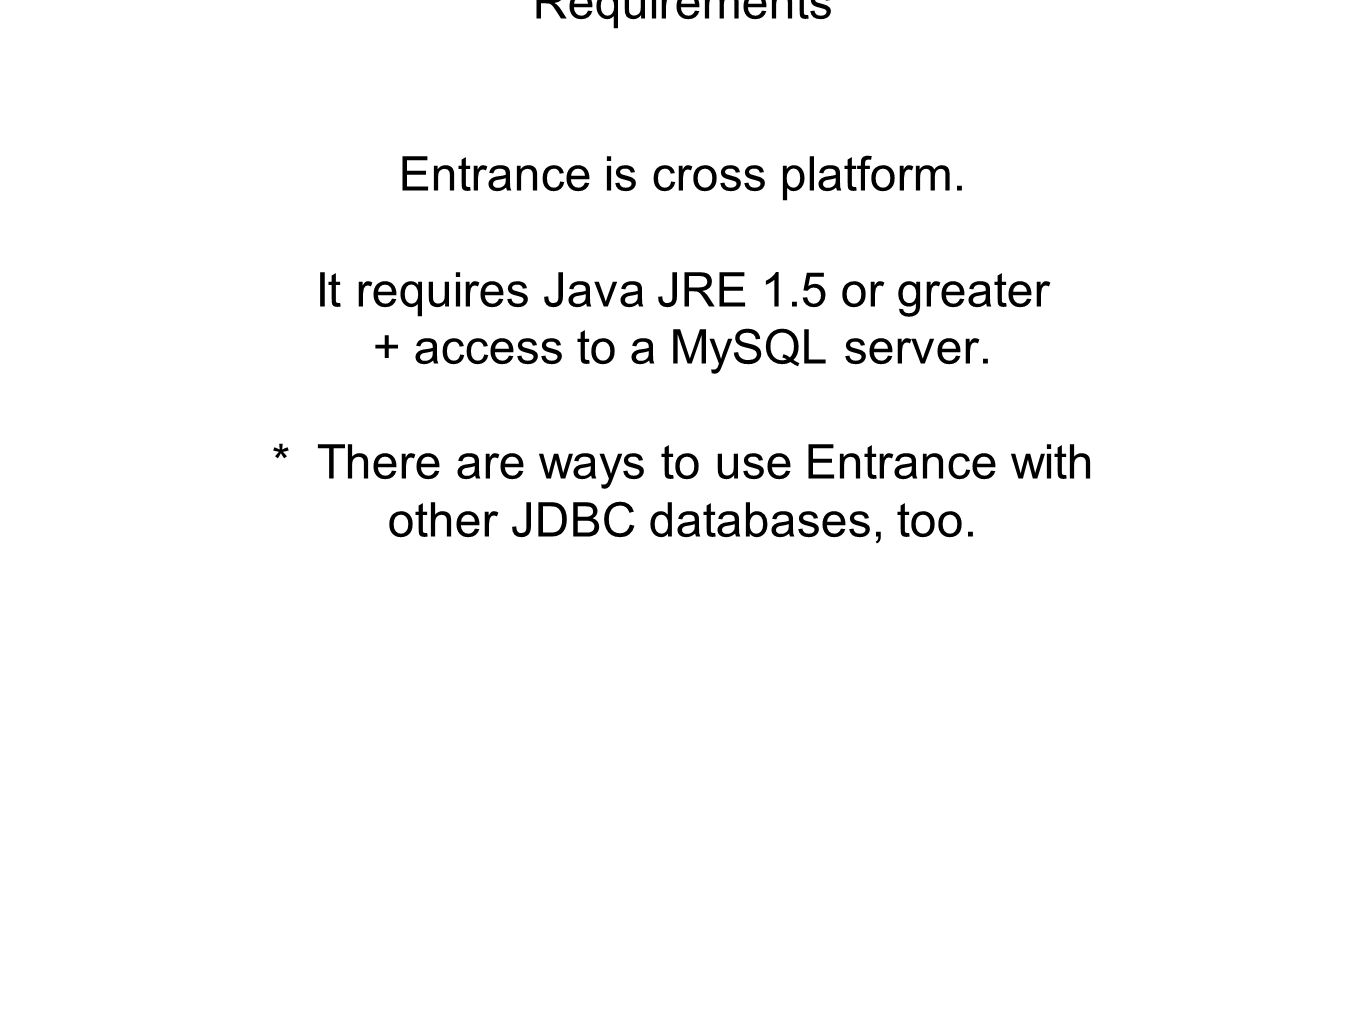 Requirements Entrance is cross platform.